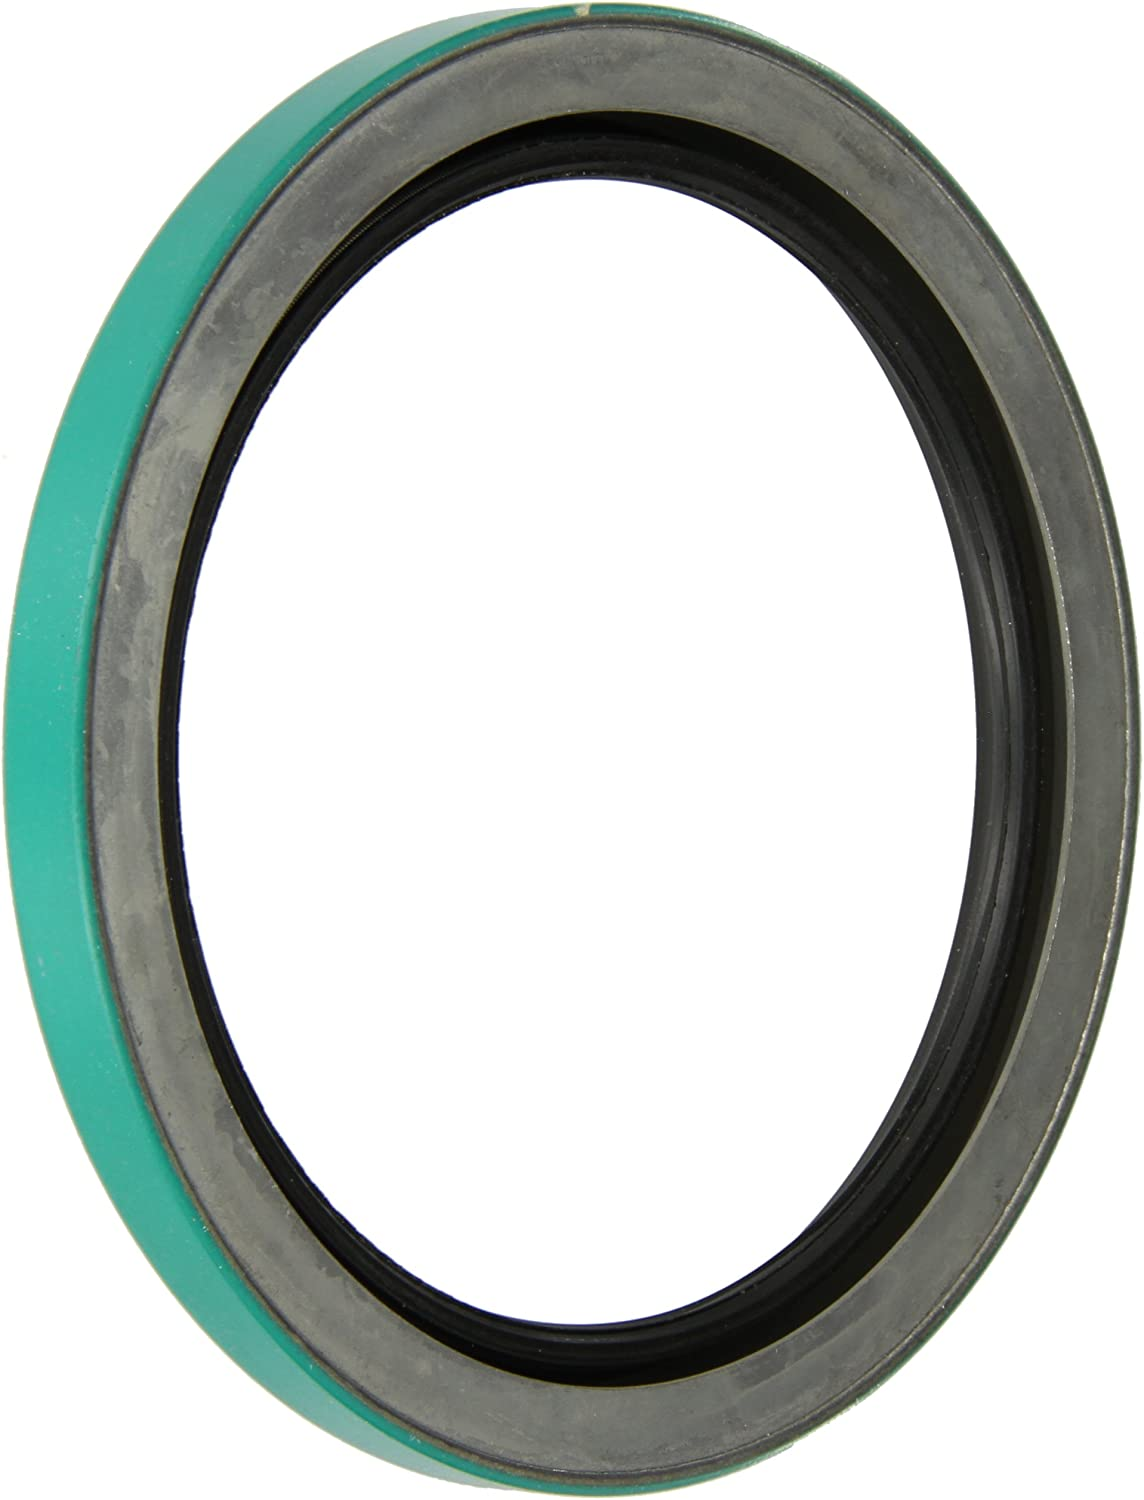 SKF 48726 New item LDS Popular products Small Bore Seal Style Inch R Lip CRWH1 Code